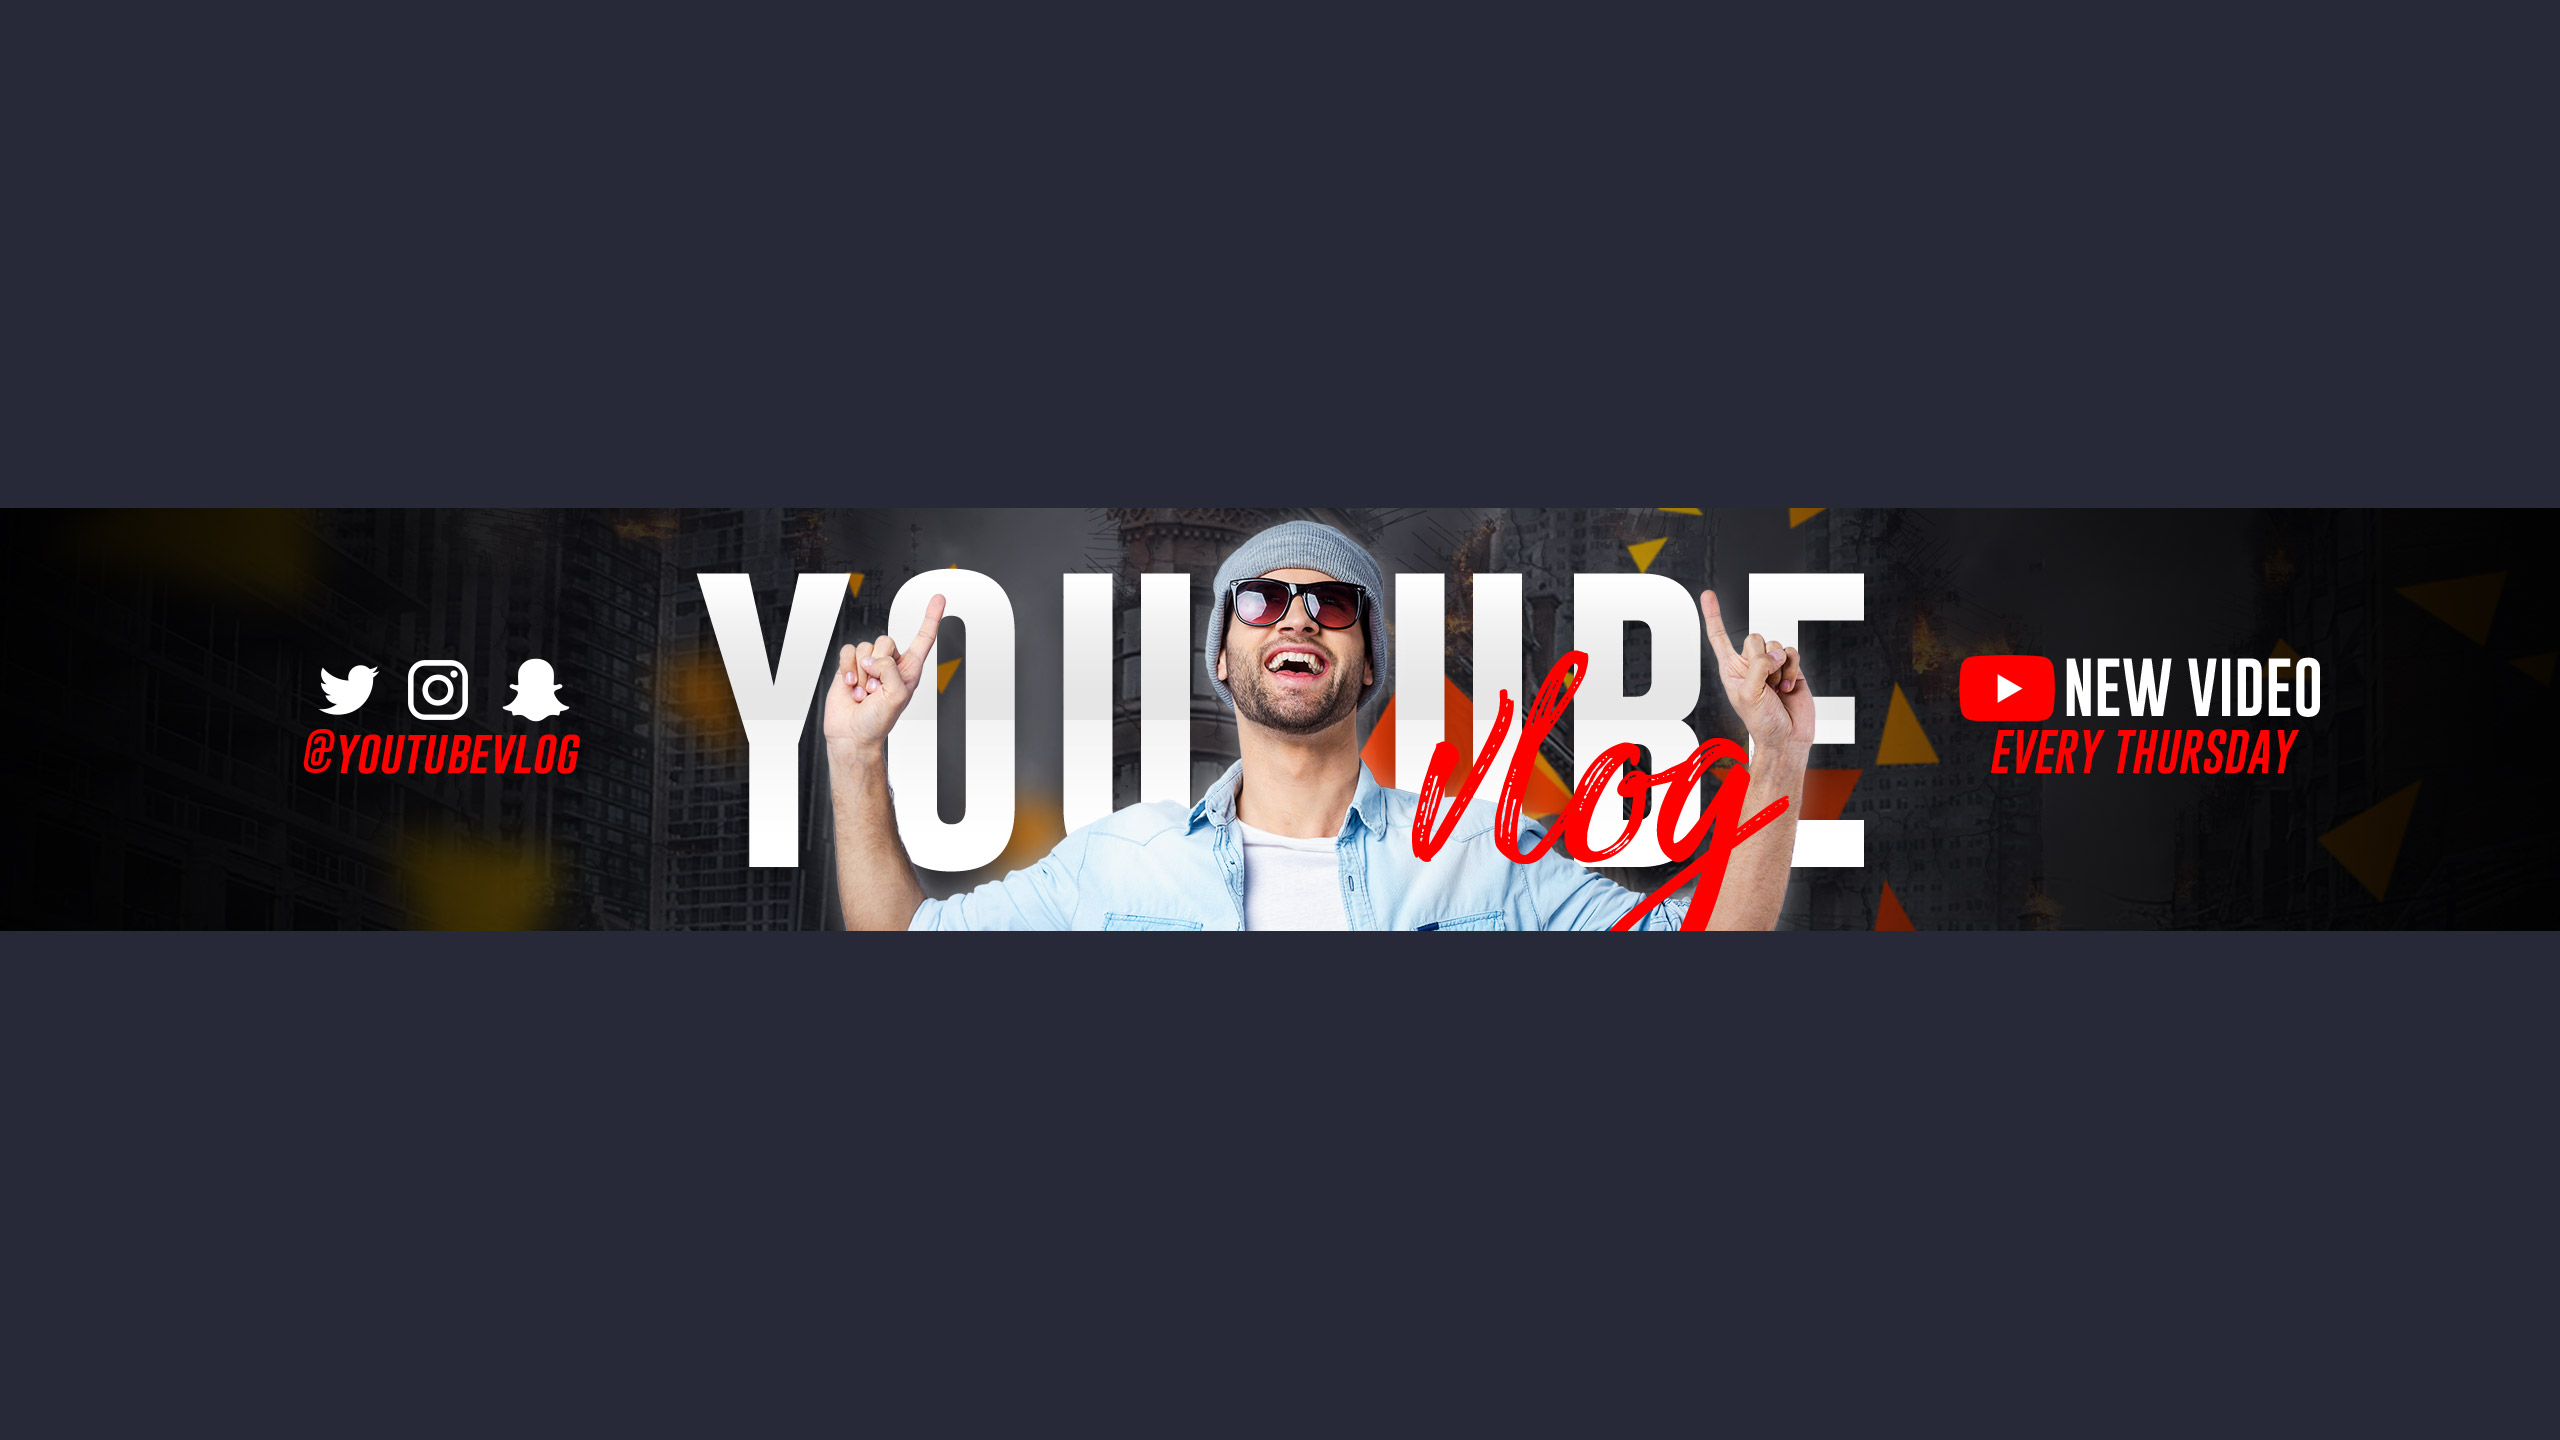 YouTube Channel Art Template Free PSD 2560 x 1440